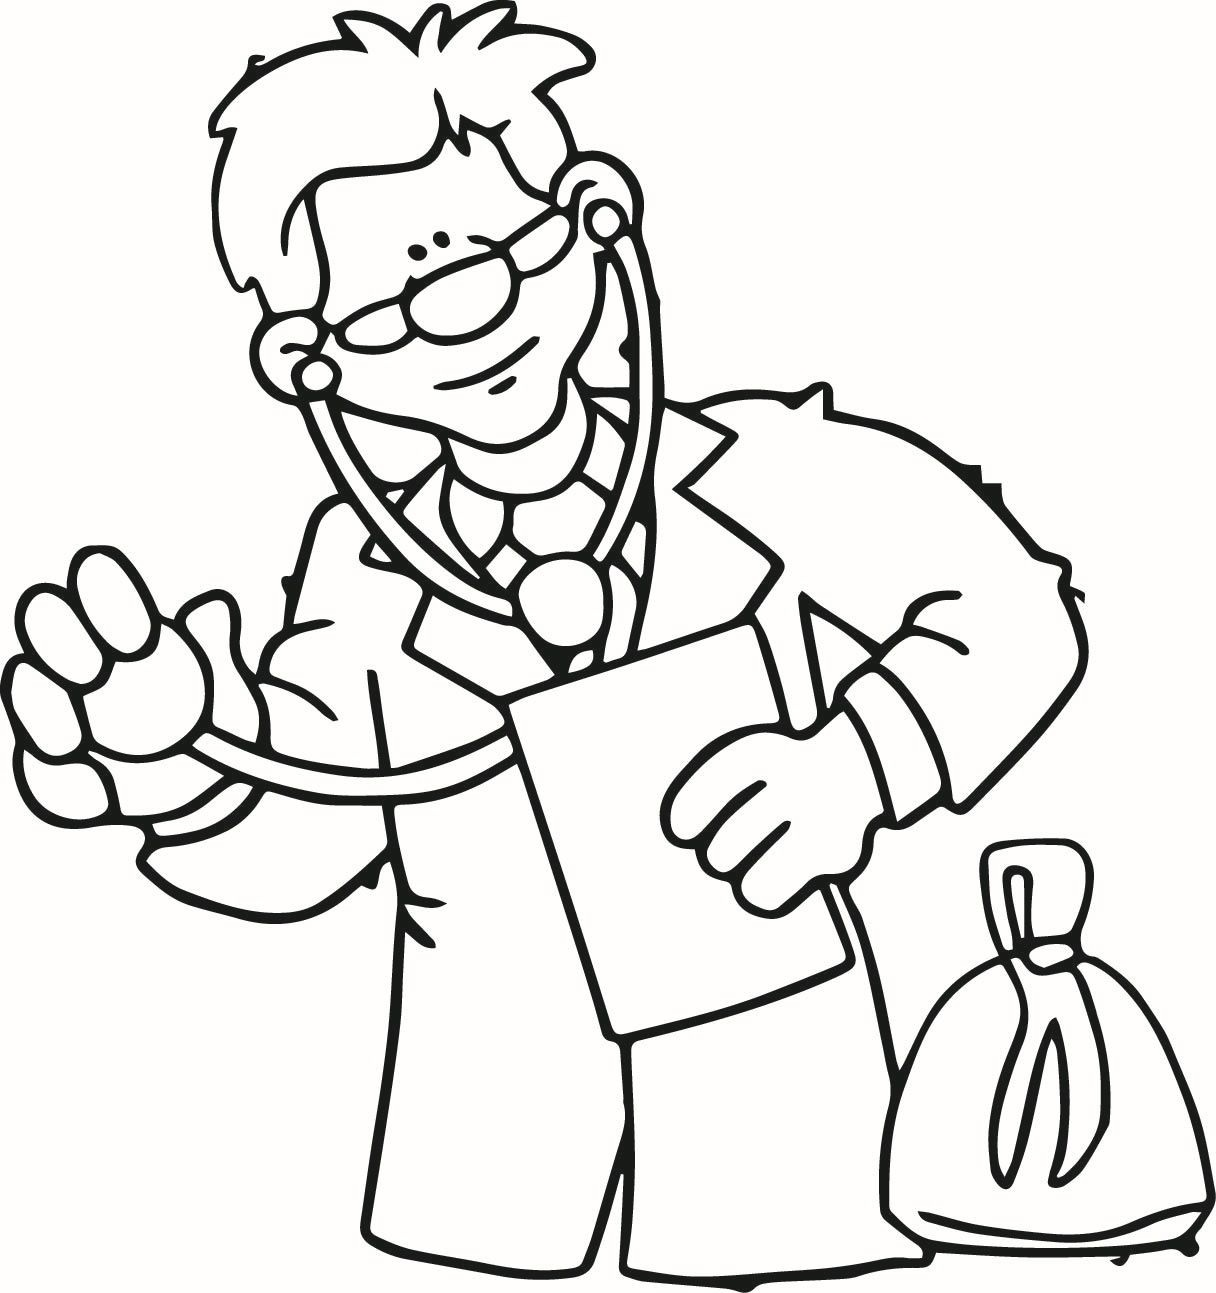 ▷ Doctor: Coloring Pages & Books - 100% Free And Printable! - Doctor Coloring Pages Free Printable